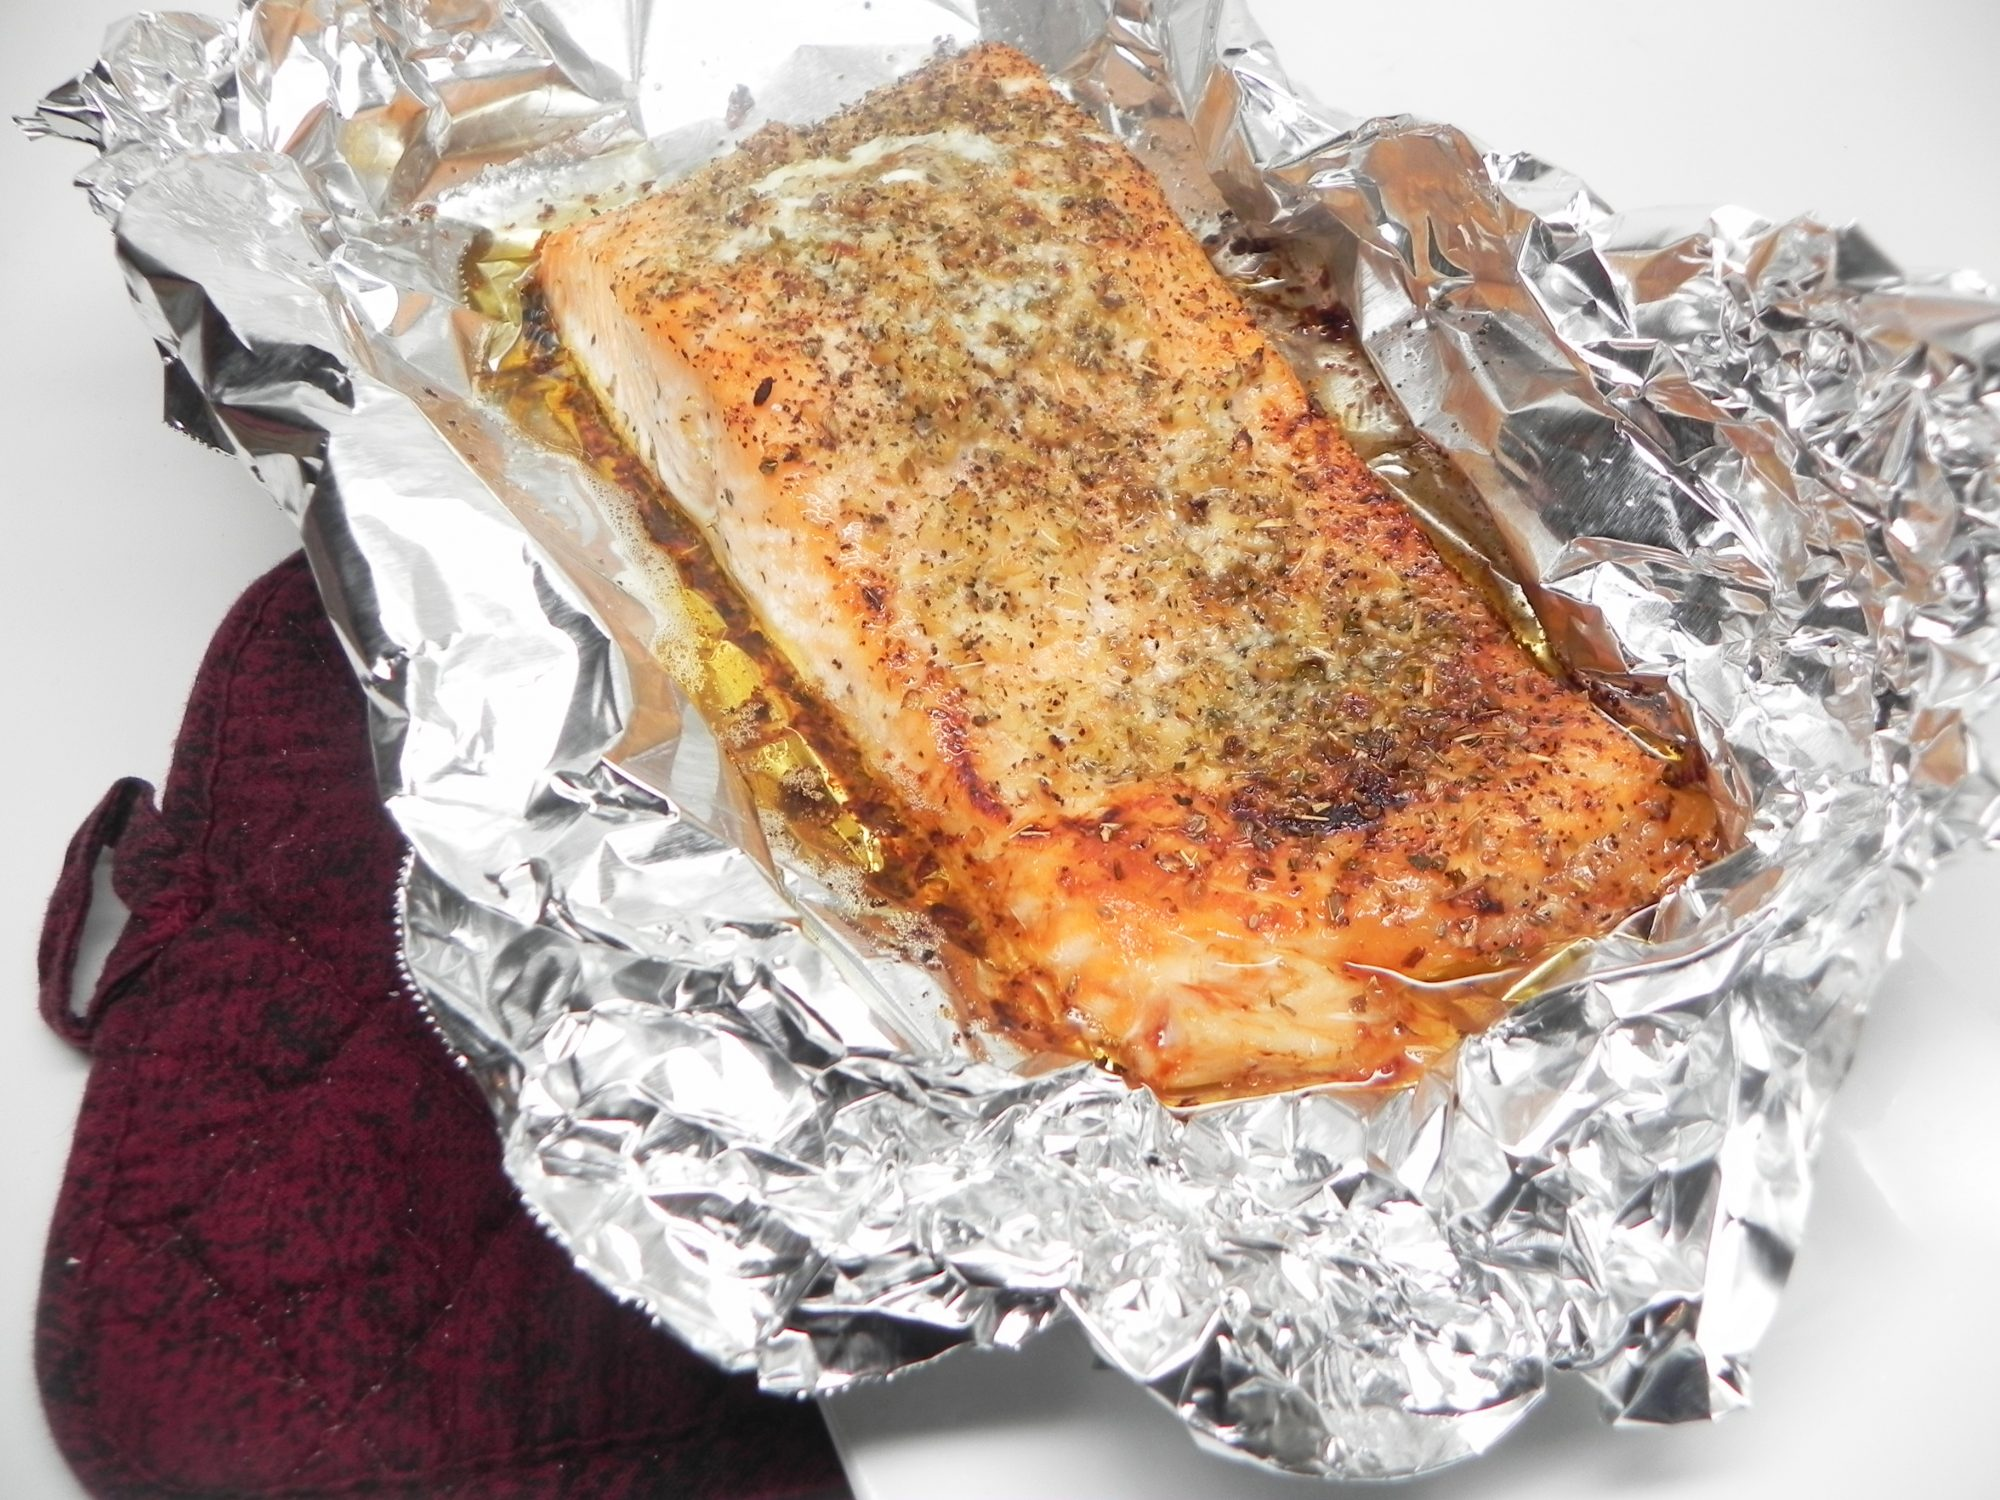 salmon with butter and garlic topping in foil